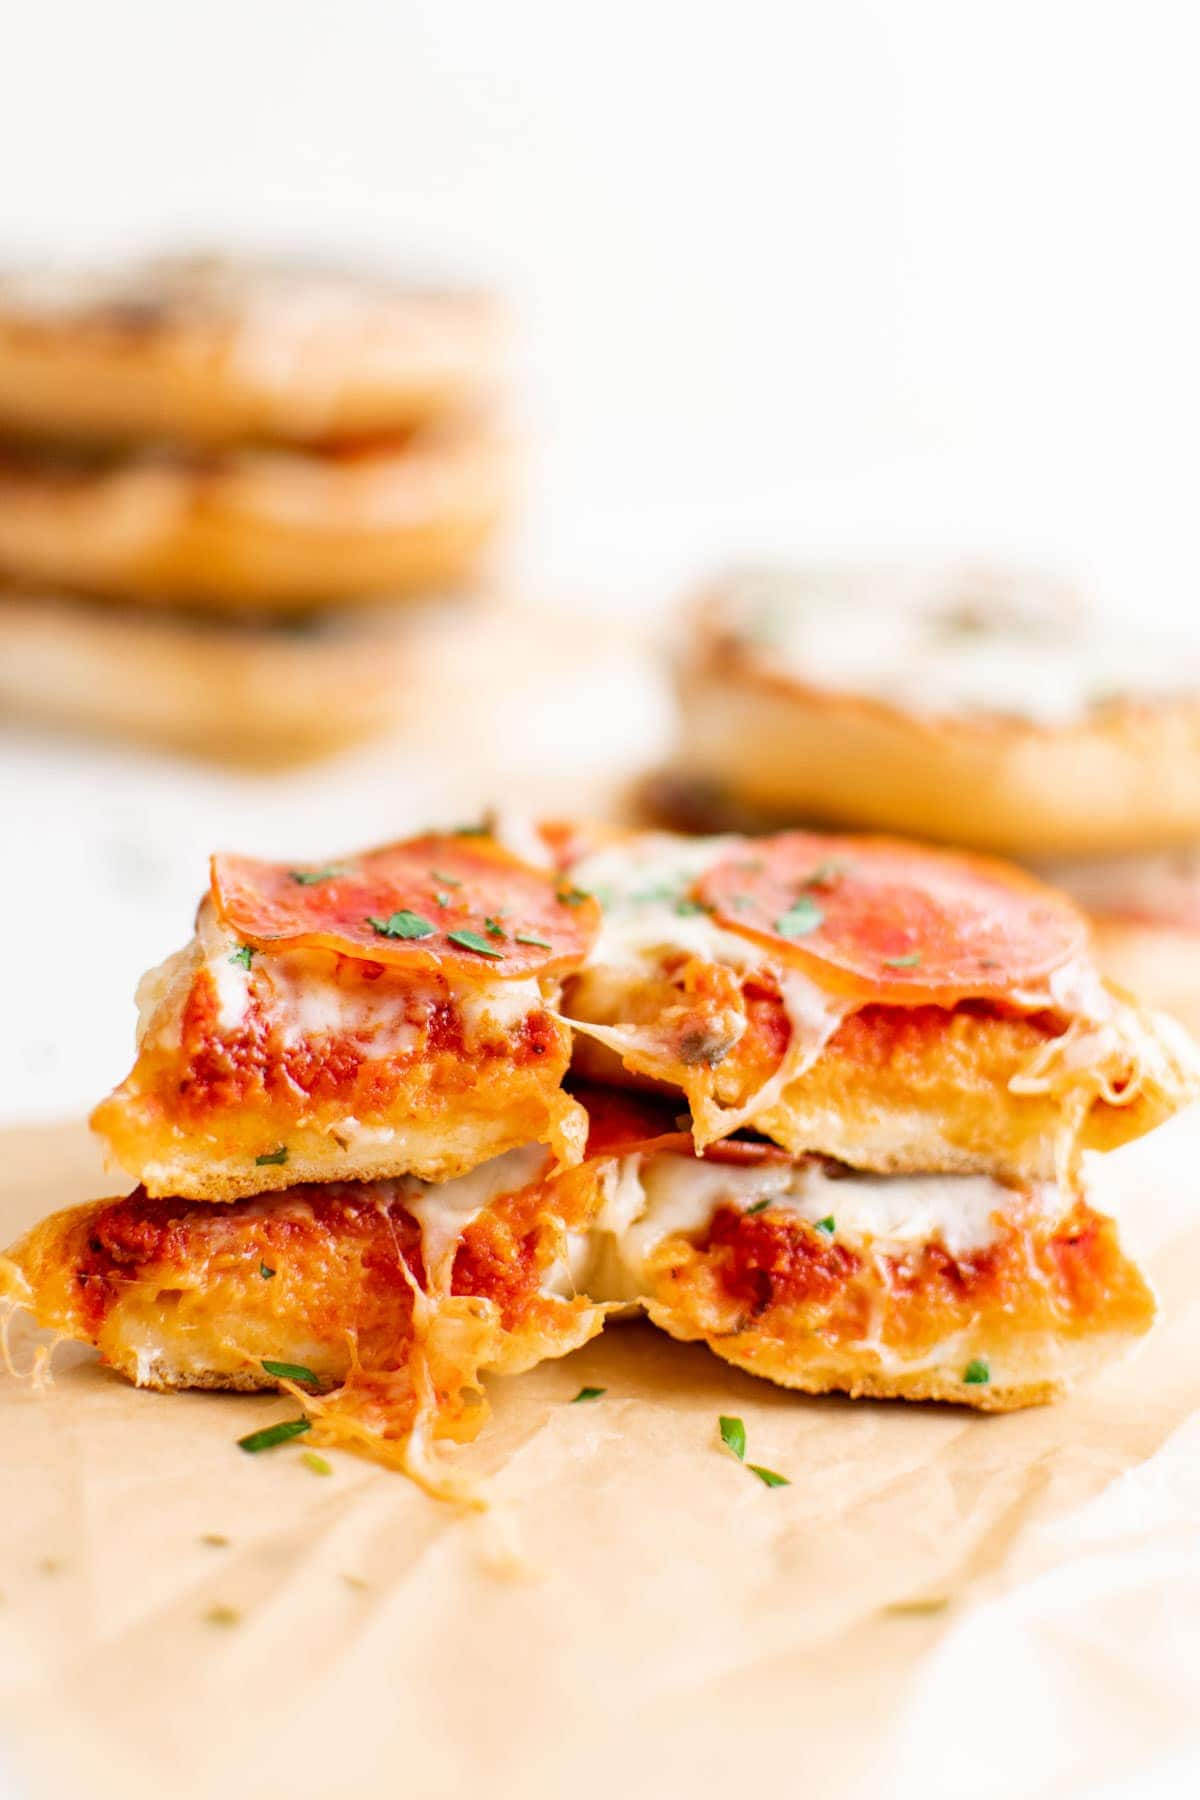 pizza bagel sliced in half and stacked